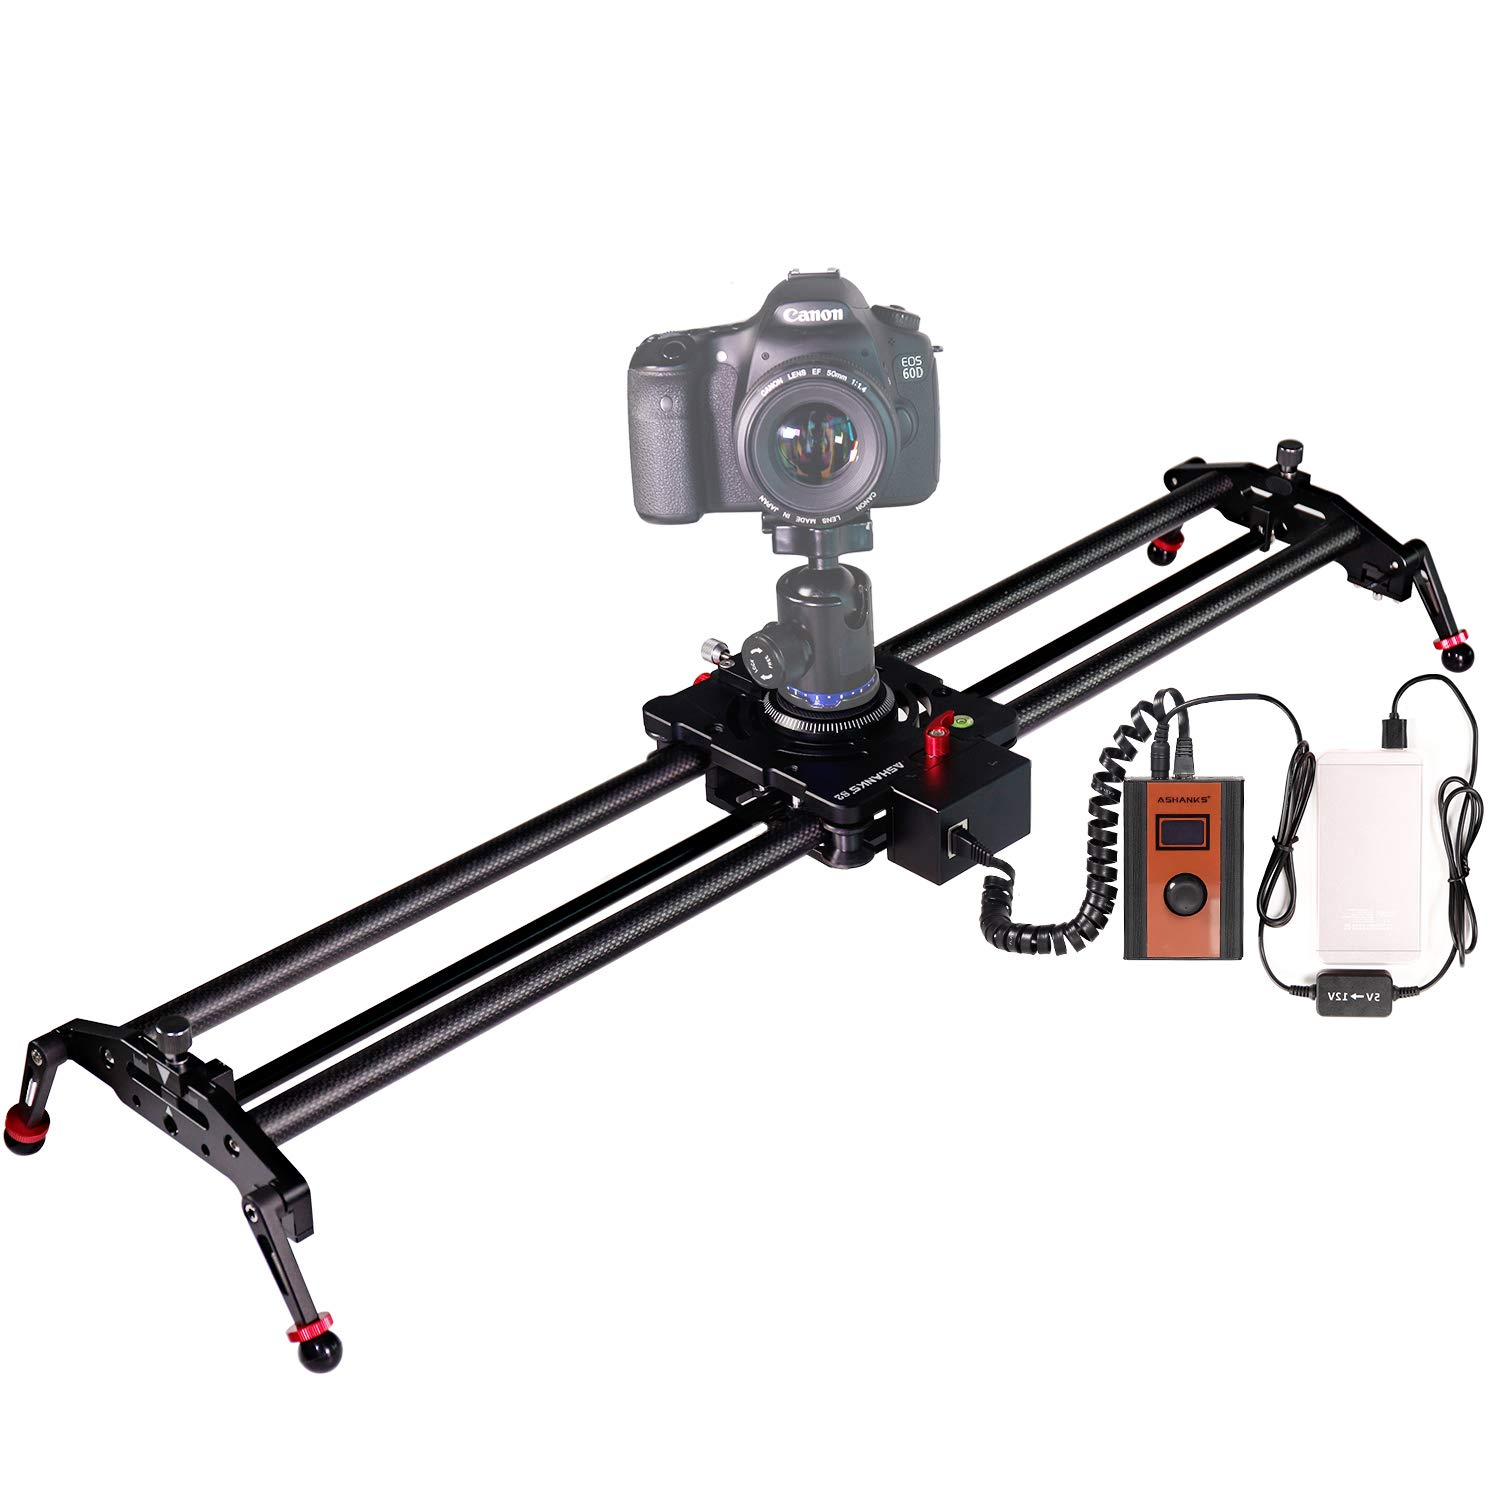 ASHANKS Motorized Camera Slider with Controller, Timelapse and Focus Track Shot Video Recording for DSLR Cameras. 80cm/31'' Supports up to 17.6 lbs by ASHANKS